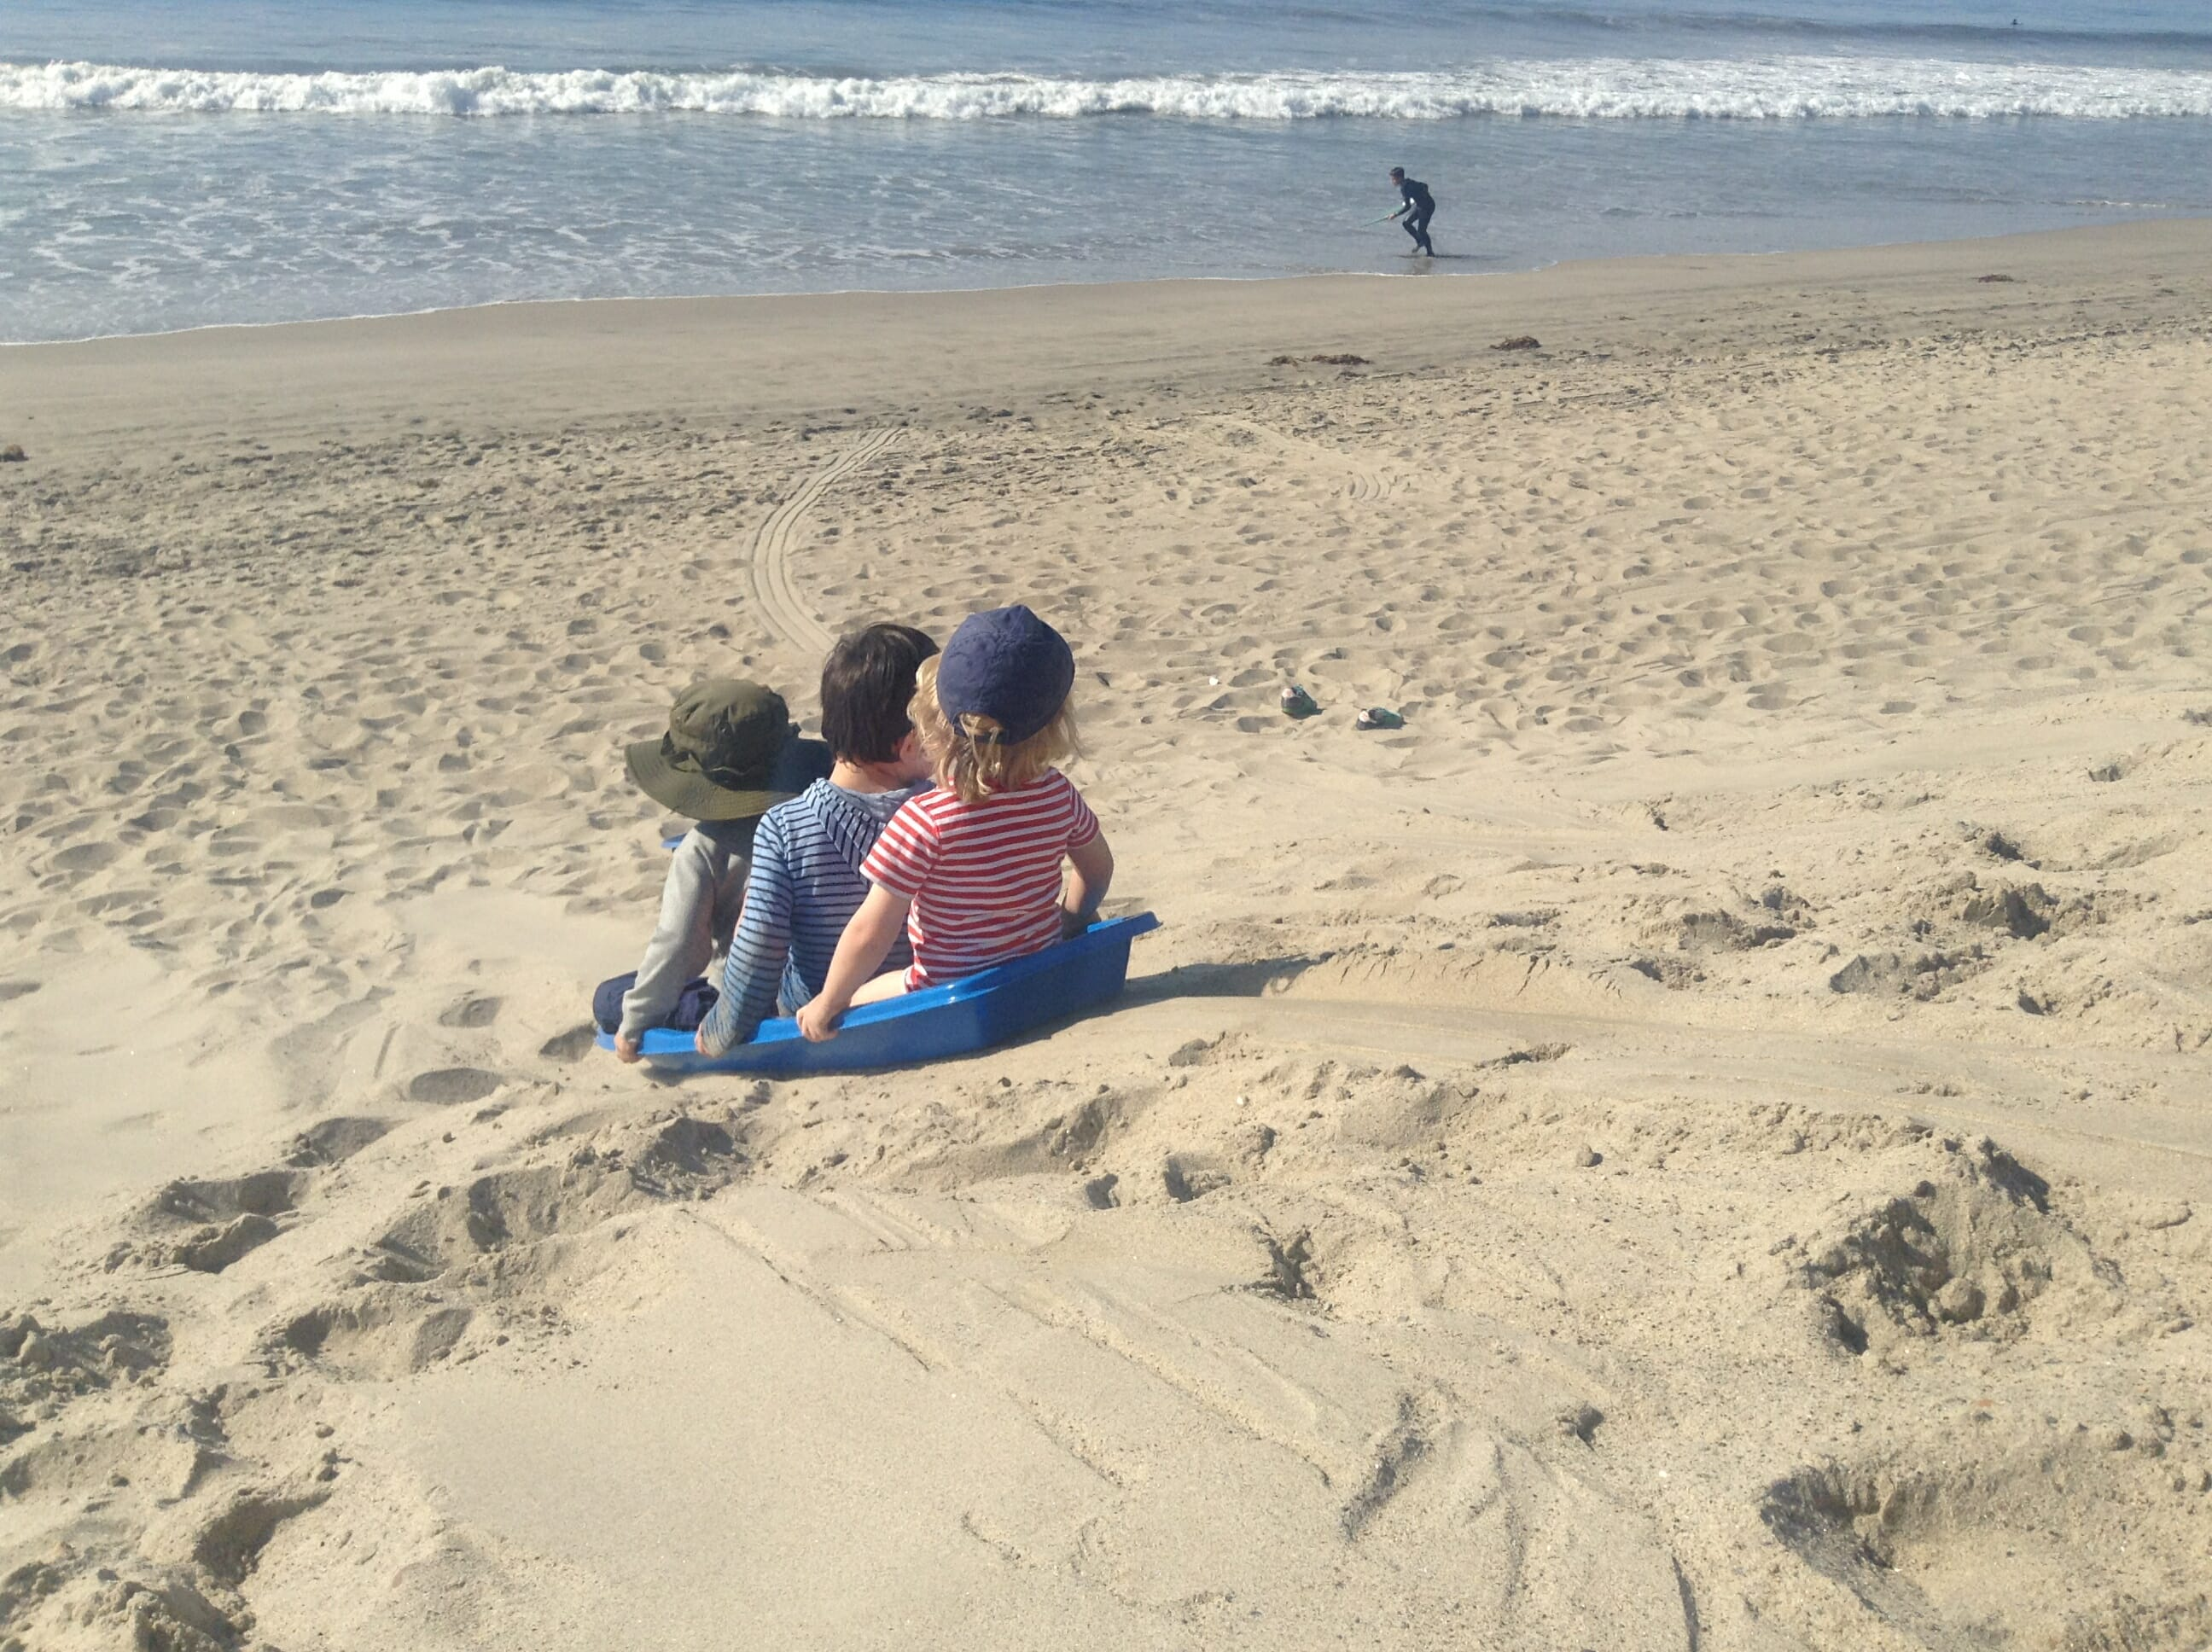 Sand Sledding: Winter Fun For The Whole Family